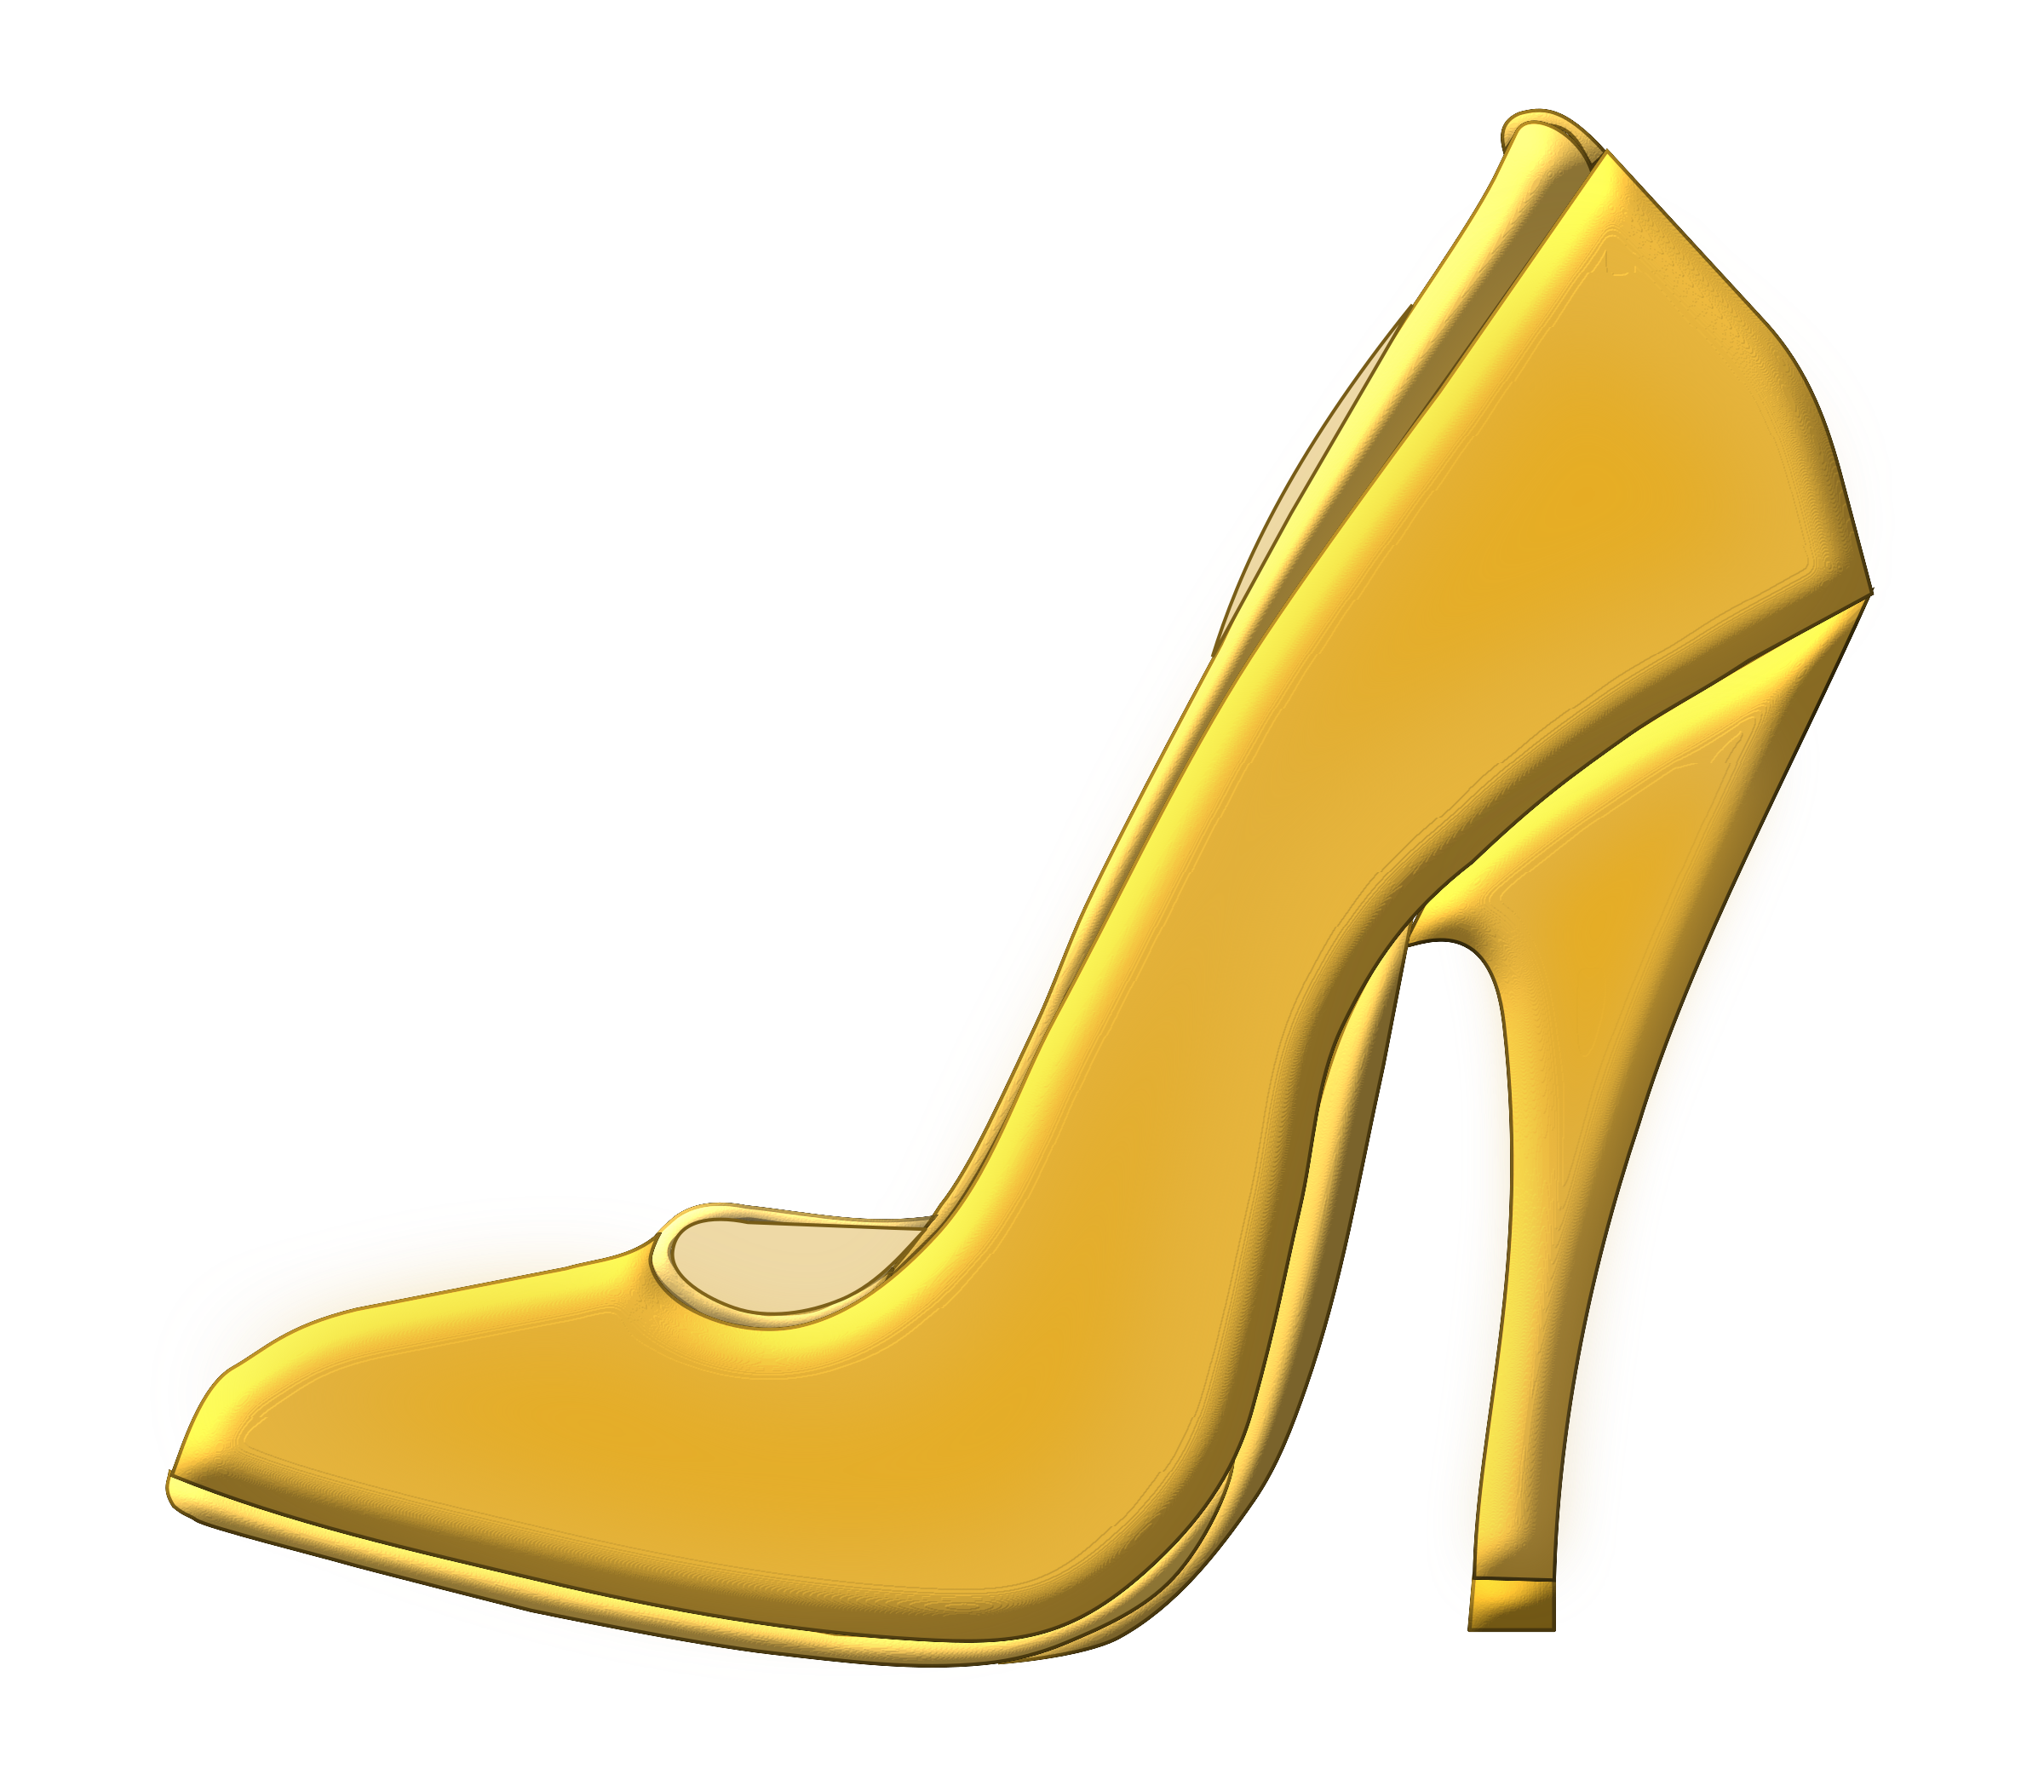 14 cliparts for free. Download Shoes clipart cinderella and use in.